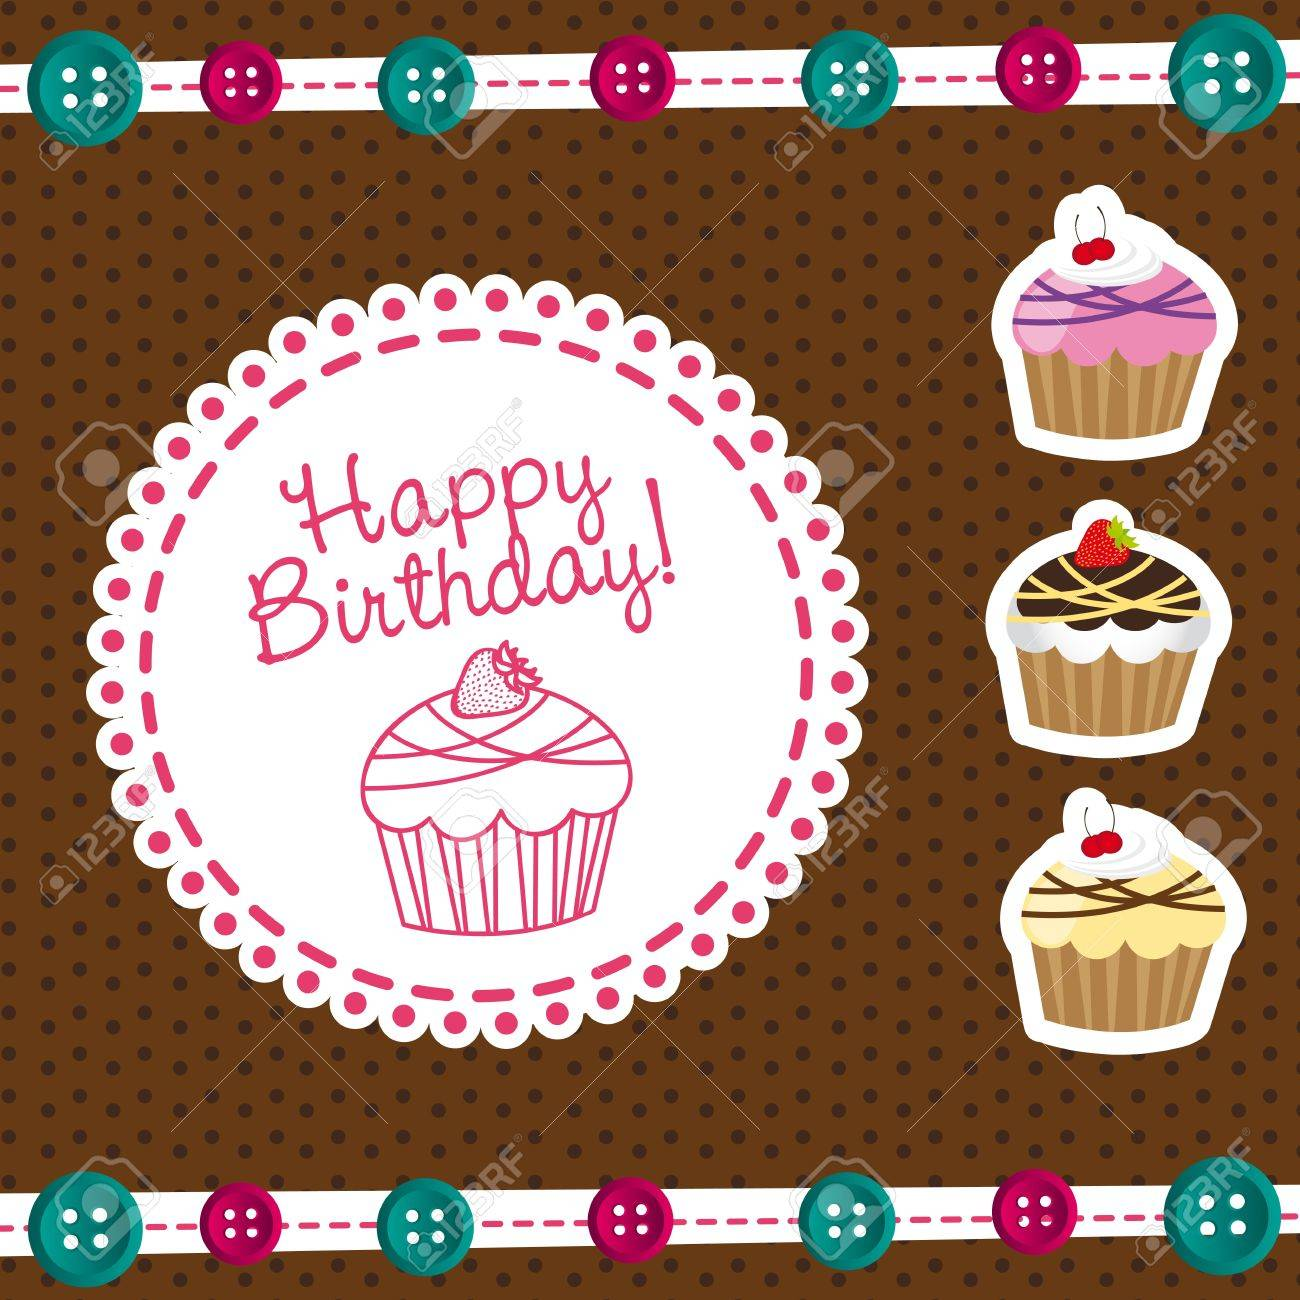 Cute Cakes With Label Happy Birthday Vector Illustration Royalty